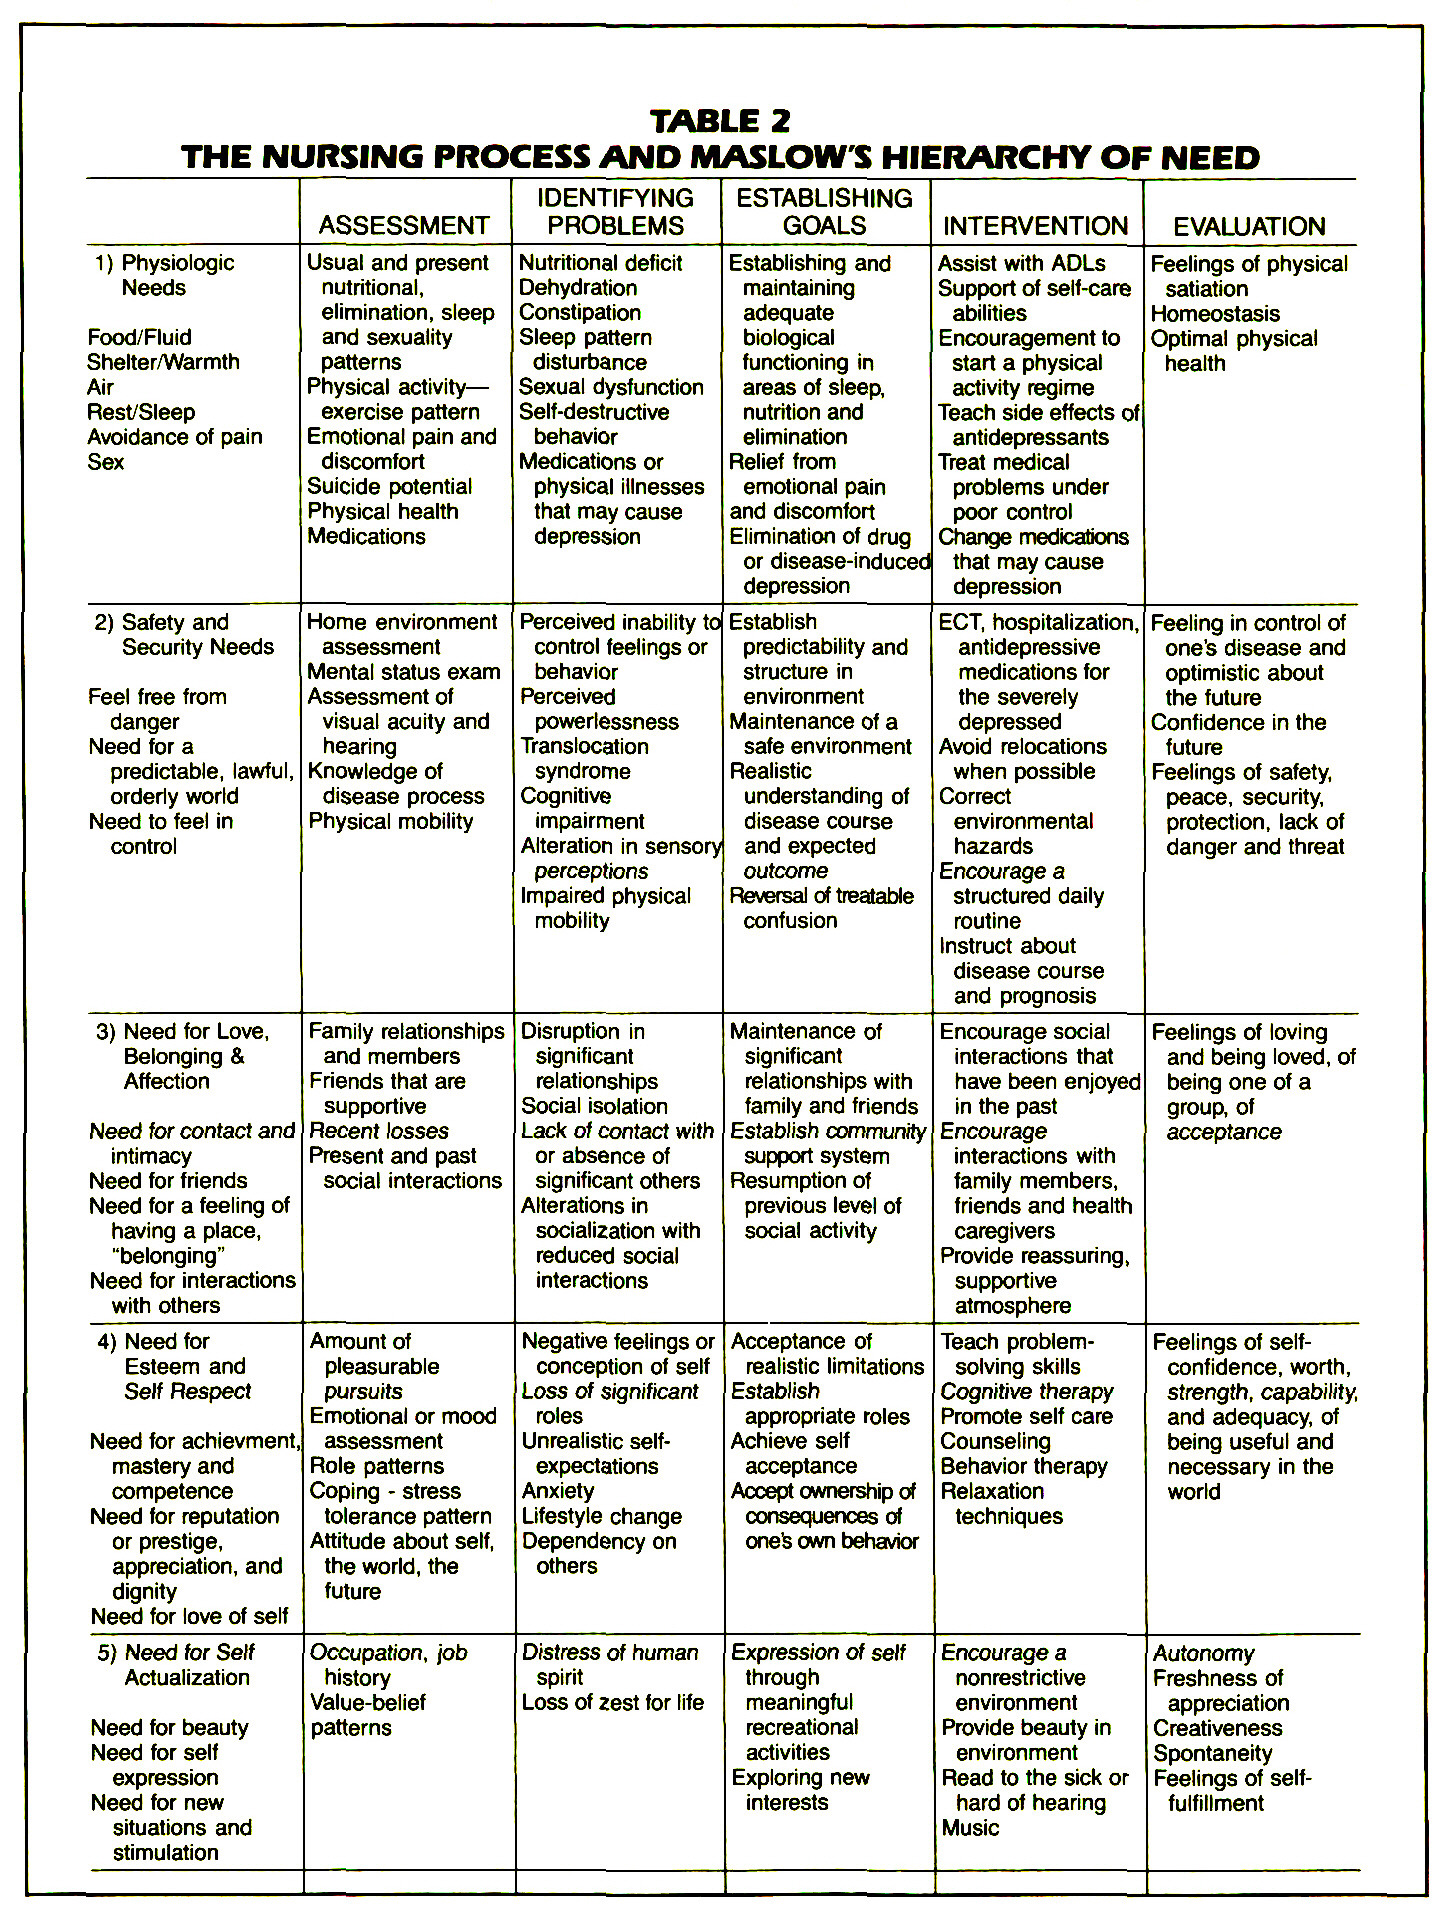 TABLE 2THE NURSING PROCESS AND MASLOWS HIERARCHY OF NEED